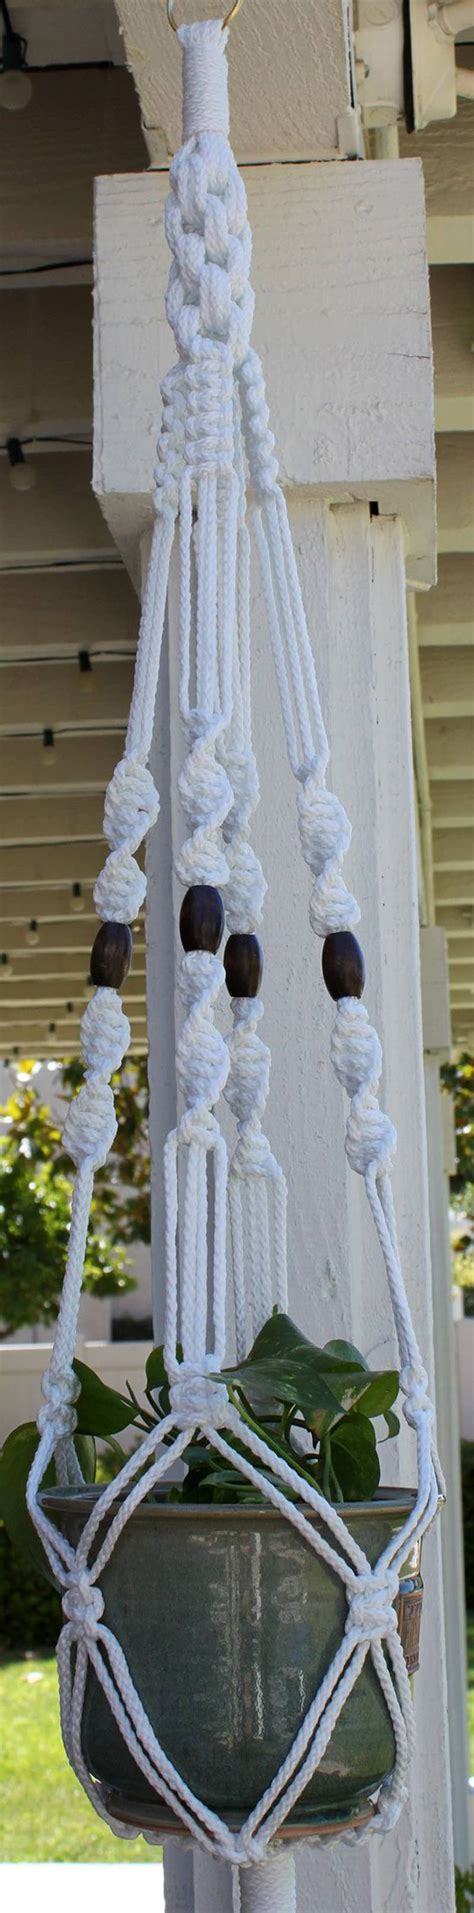 Macrame Plant Hanger Patterns - macrame plant hanger patterns to embellish any rustic or